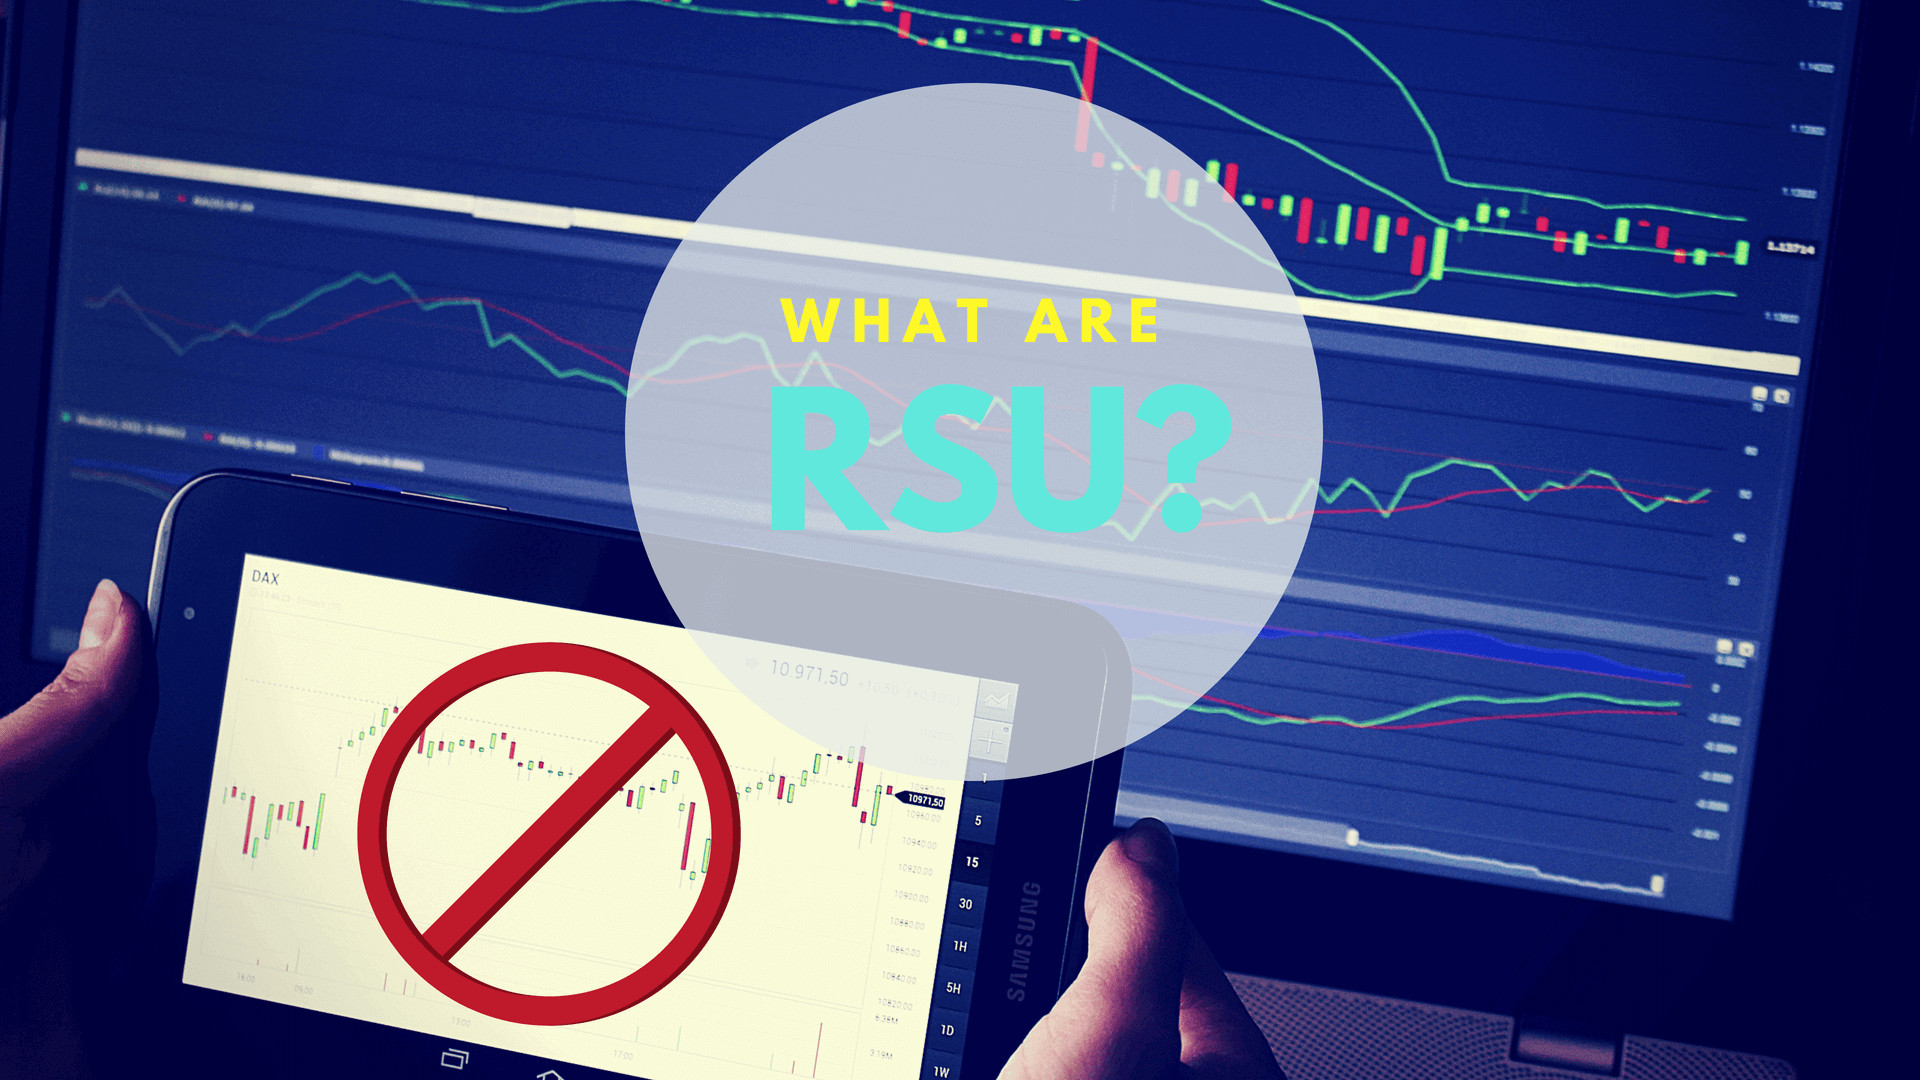 Rsu stock options definition